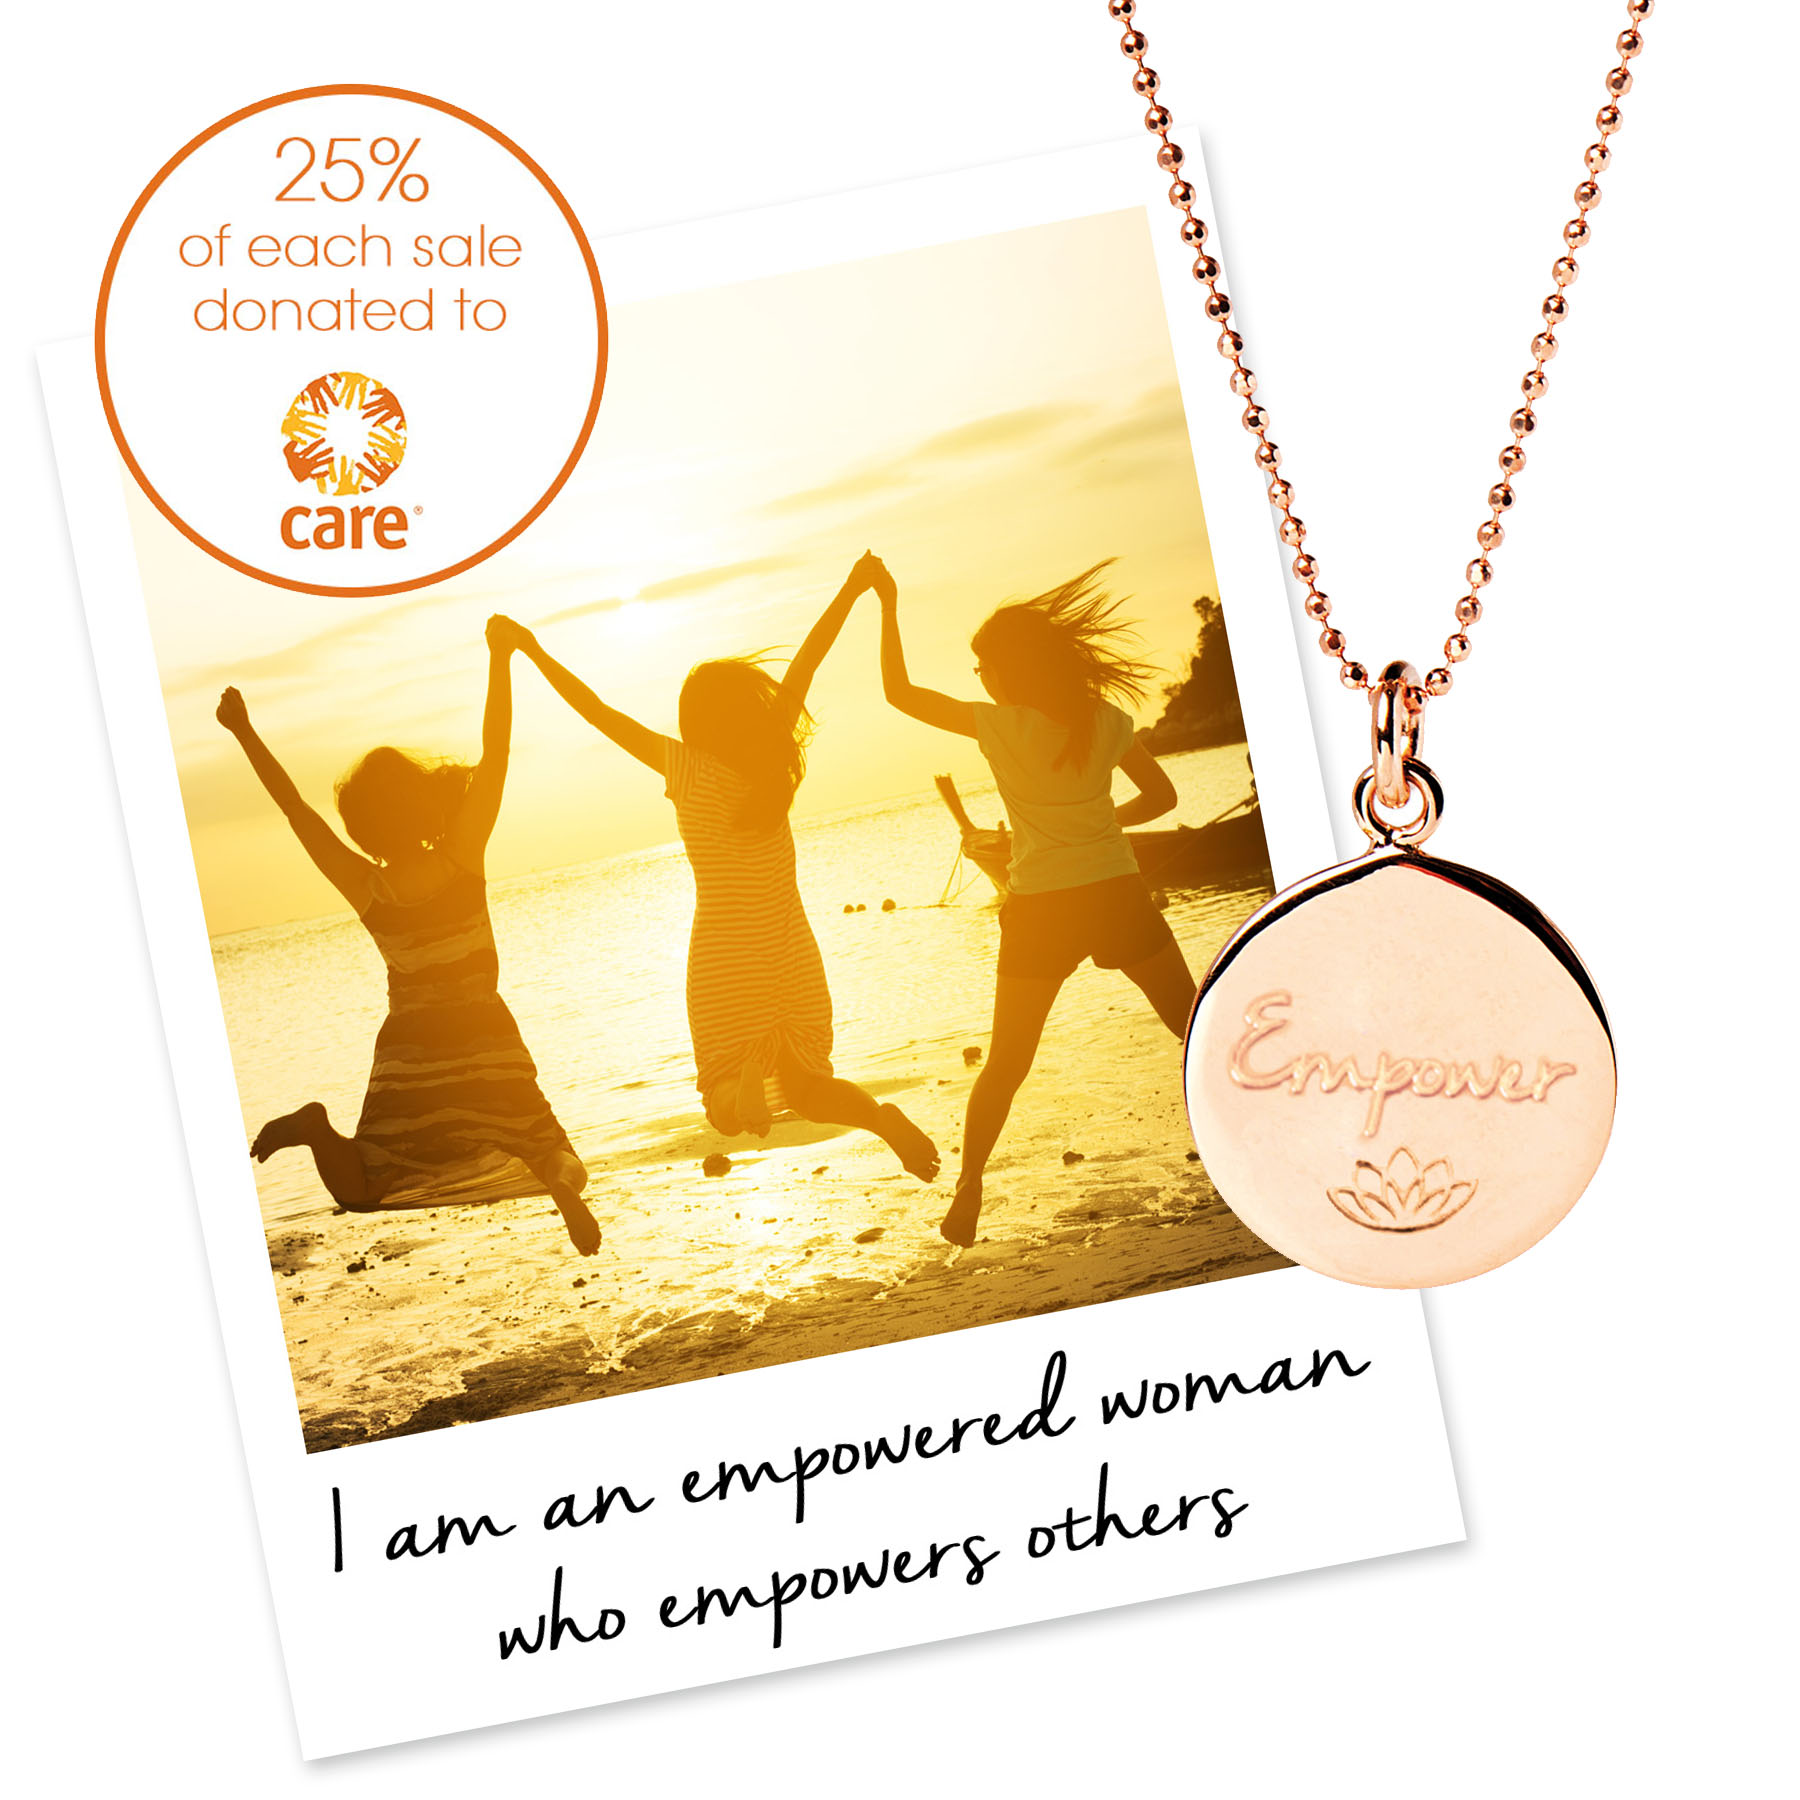 charity necklace for care international